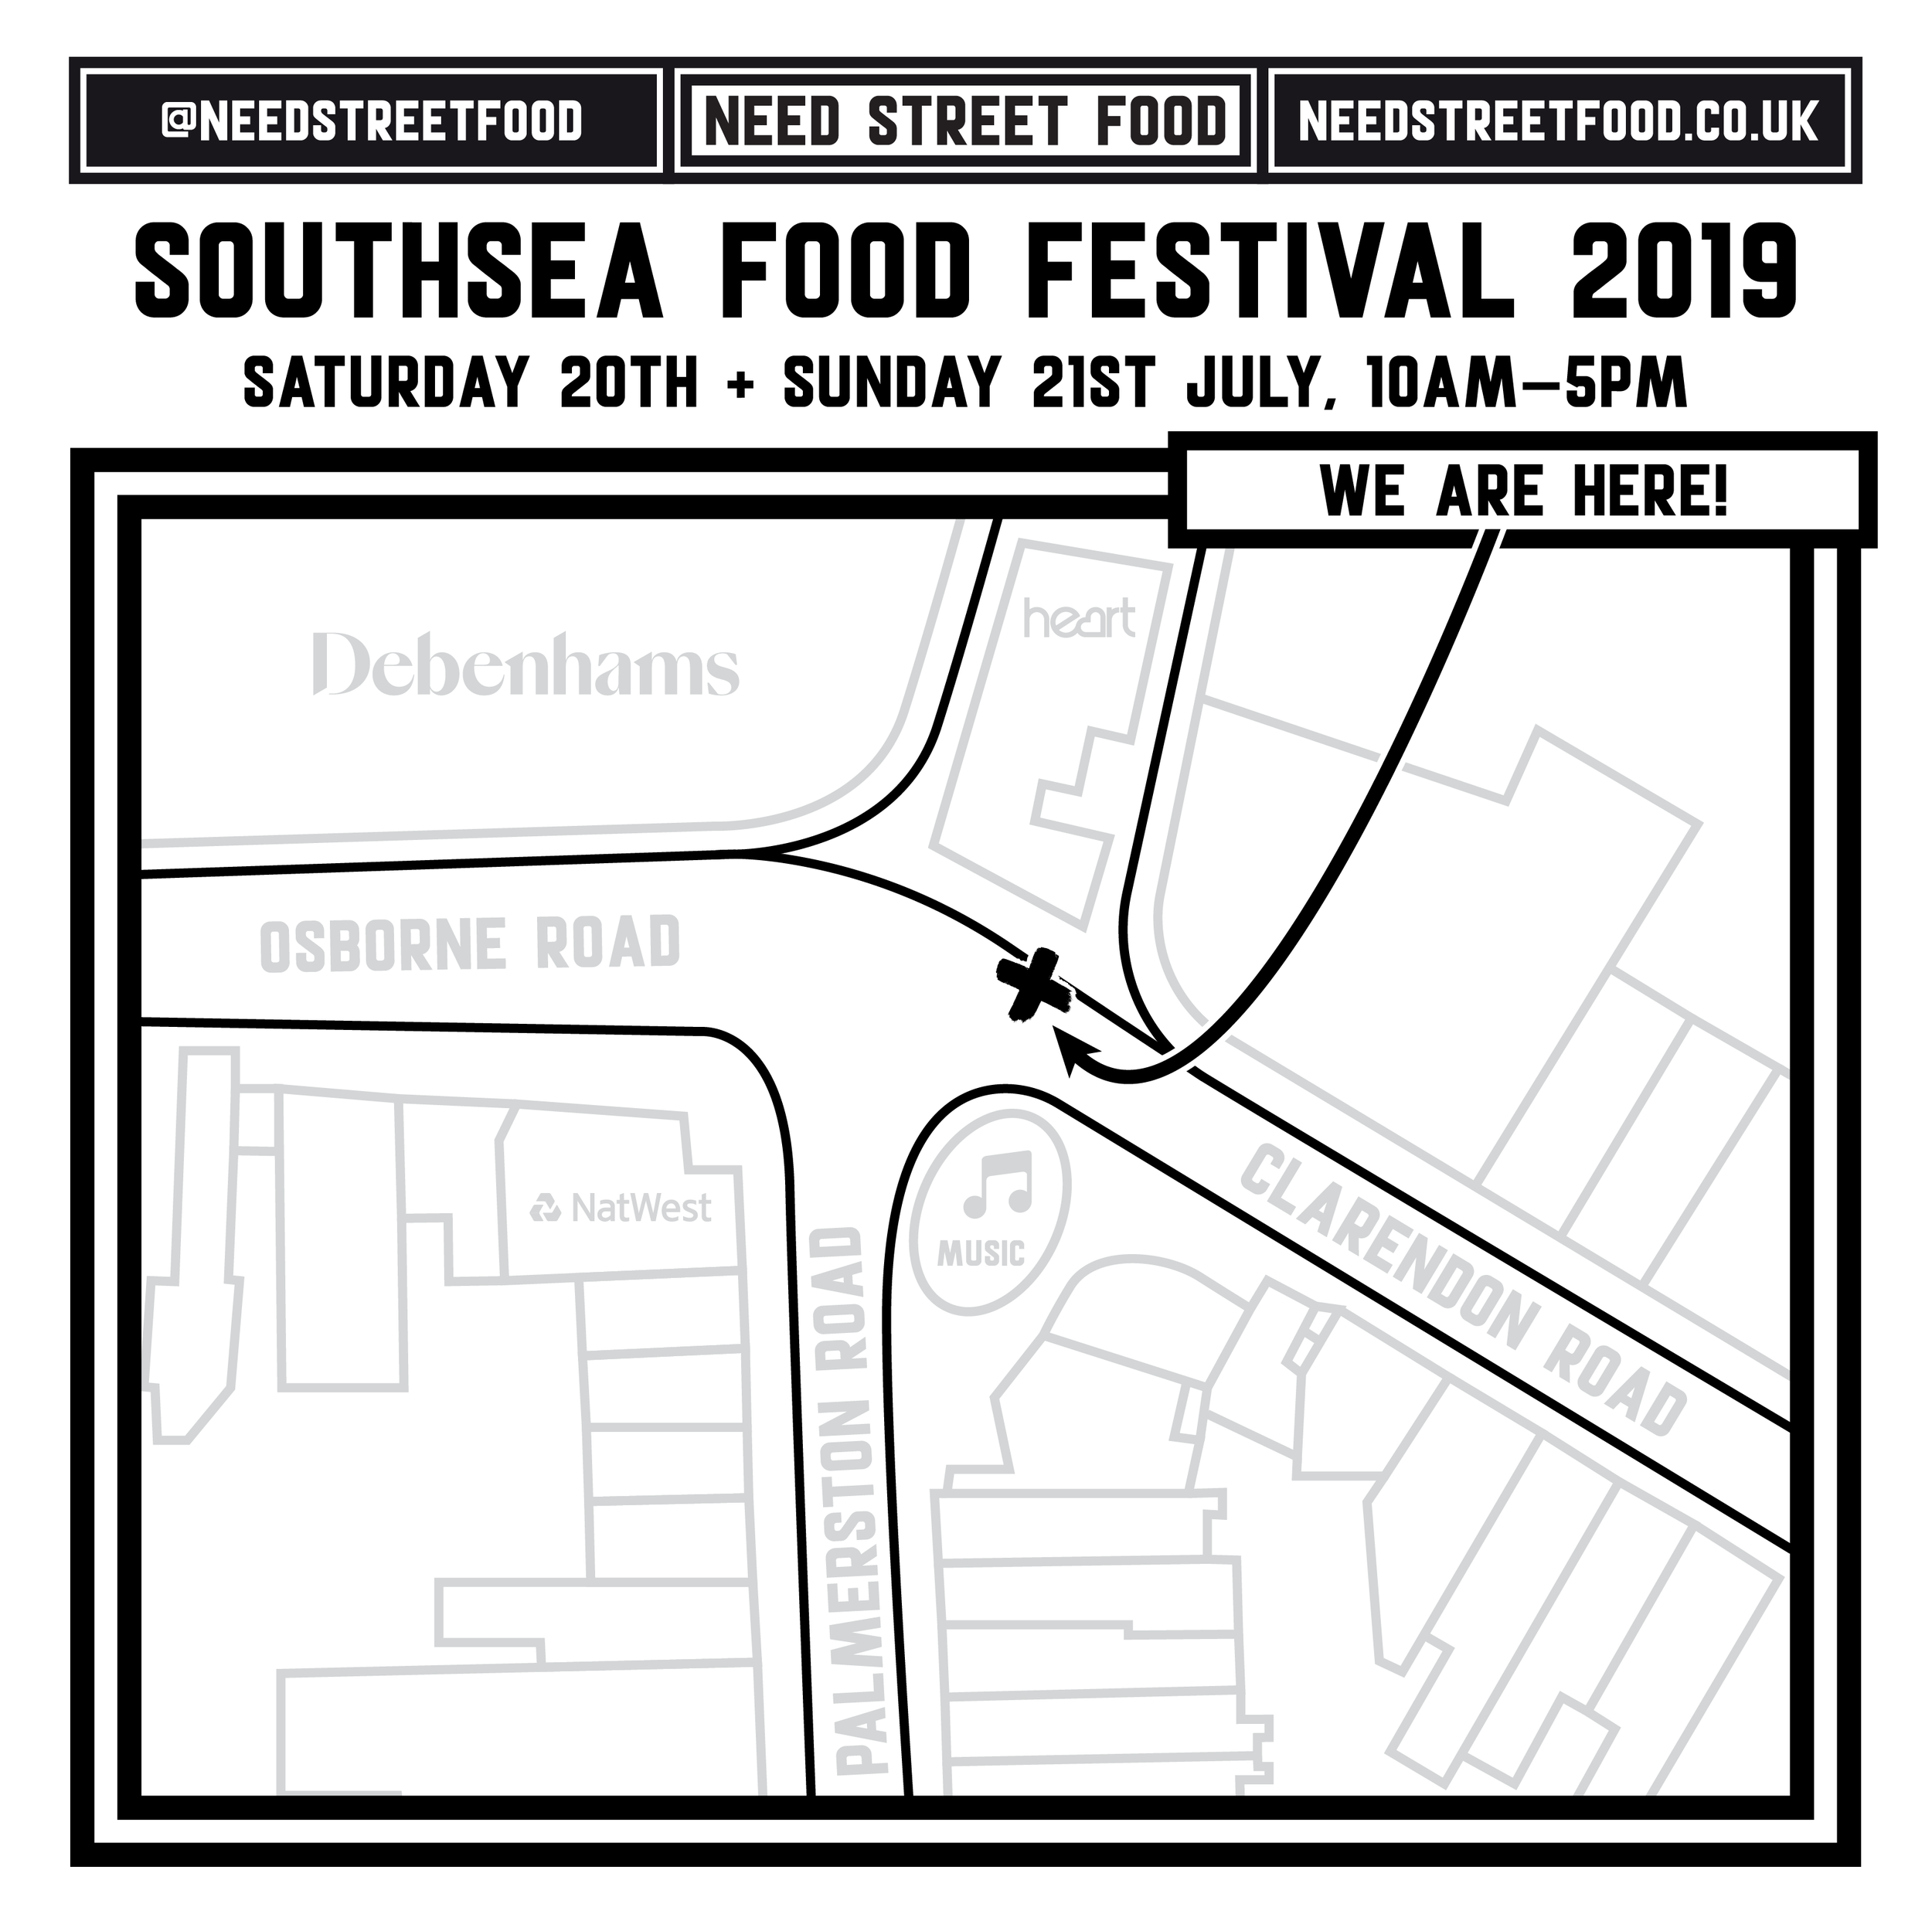 Need Street Food at Southsea Food Festival 2019.png